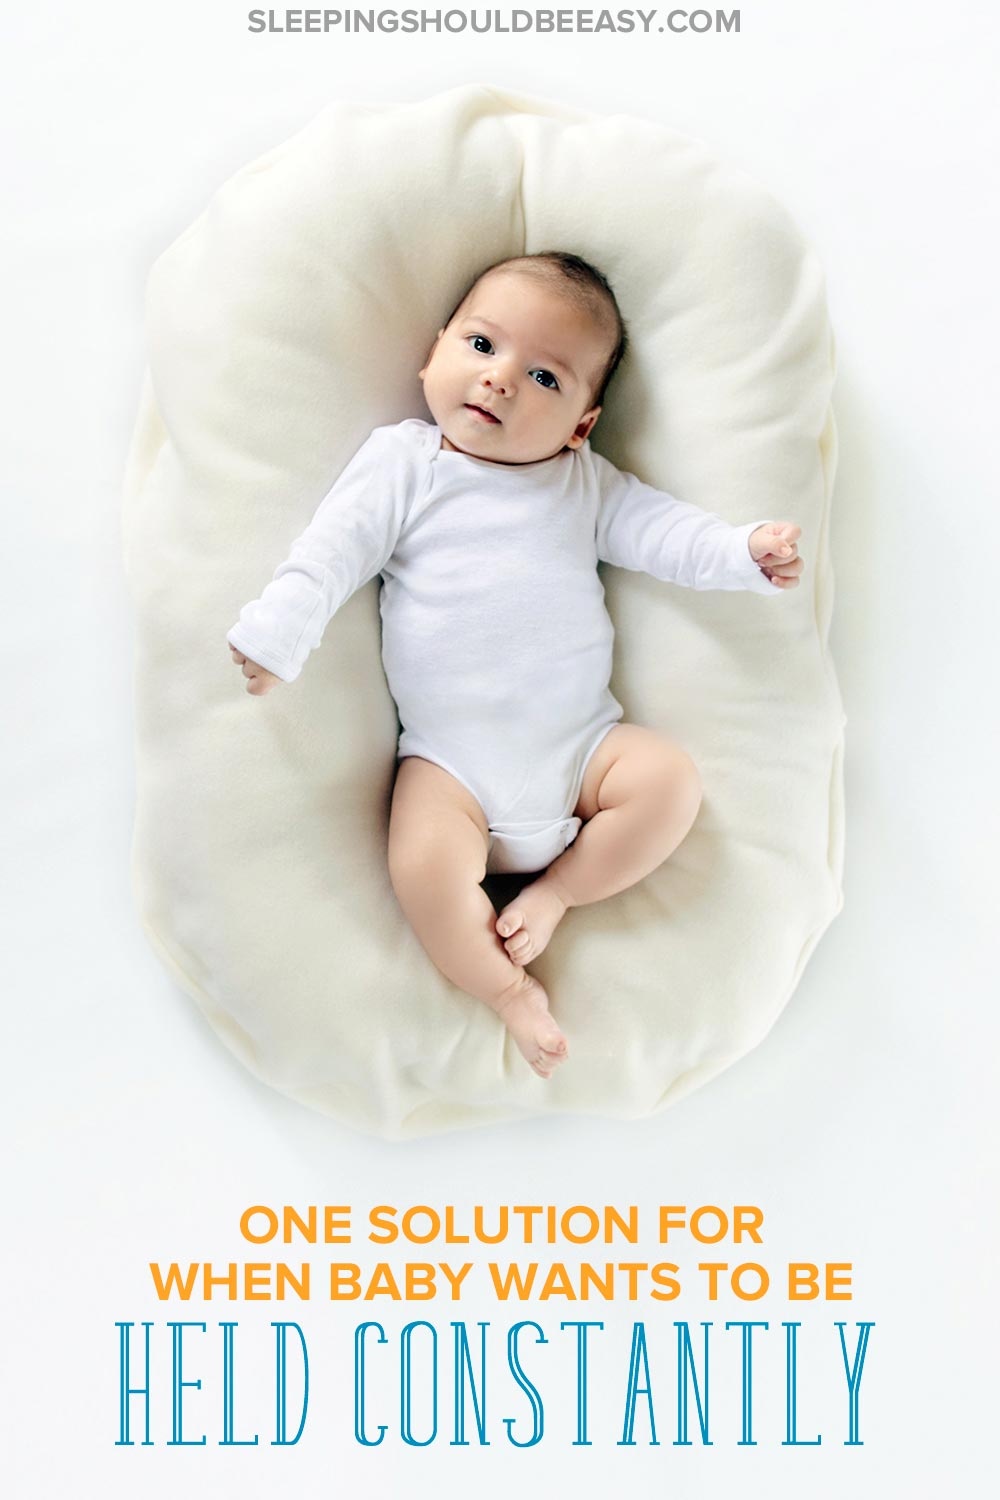 Wish you had an extra pair of arms to help hold and snuggle your baby? Here's one simple solution for when your baby wants to be held all the time.